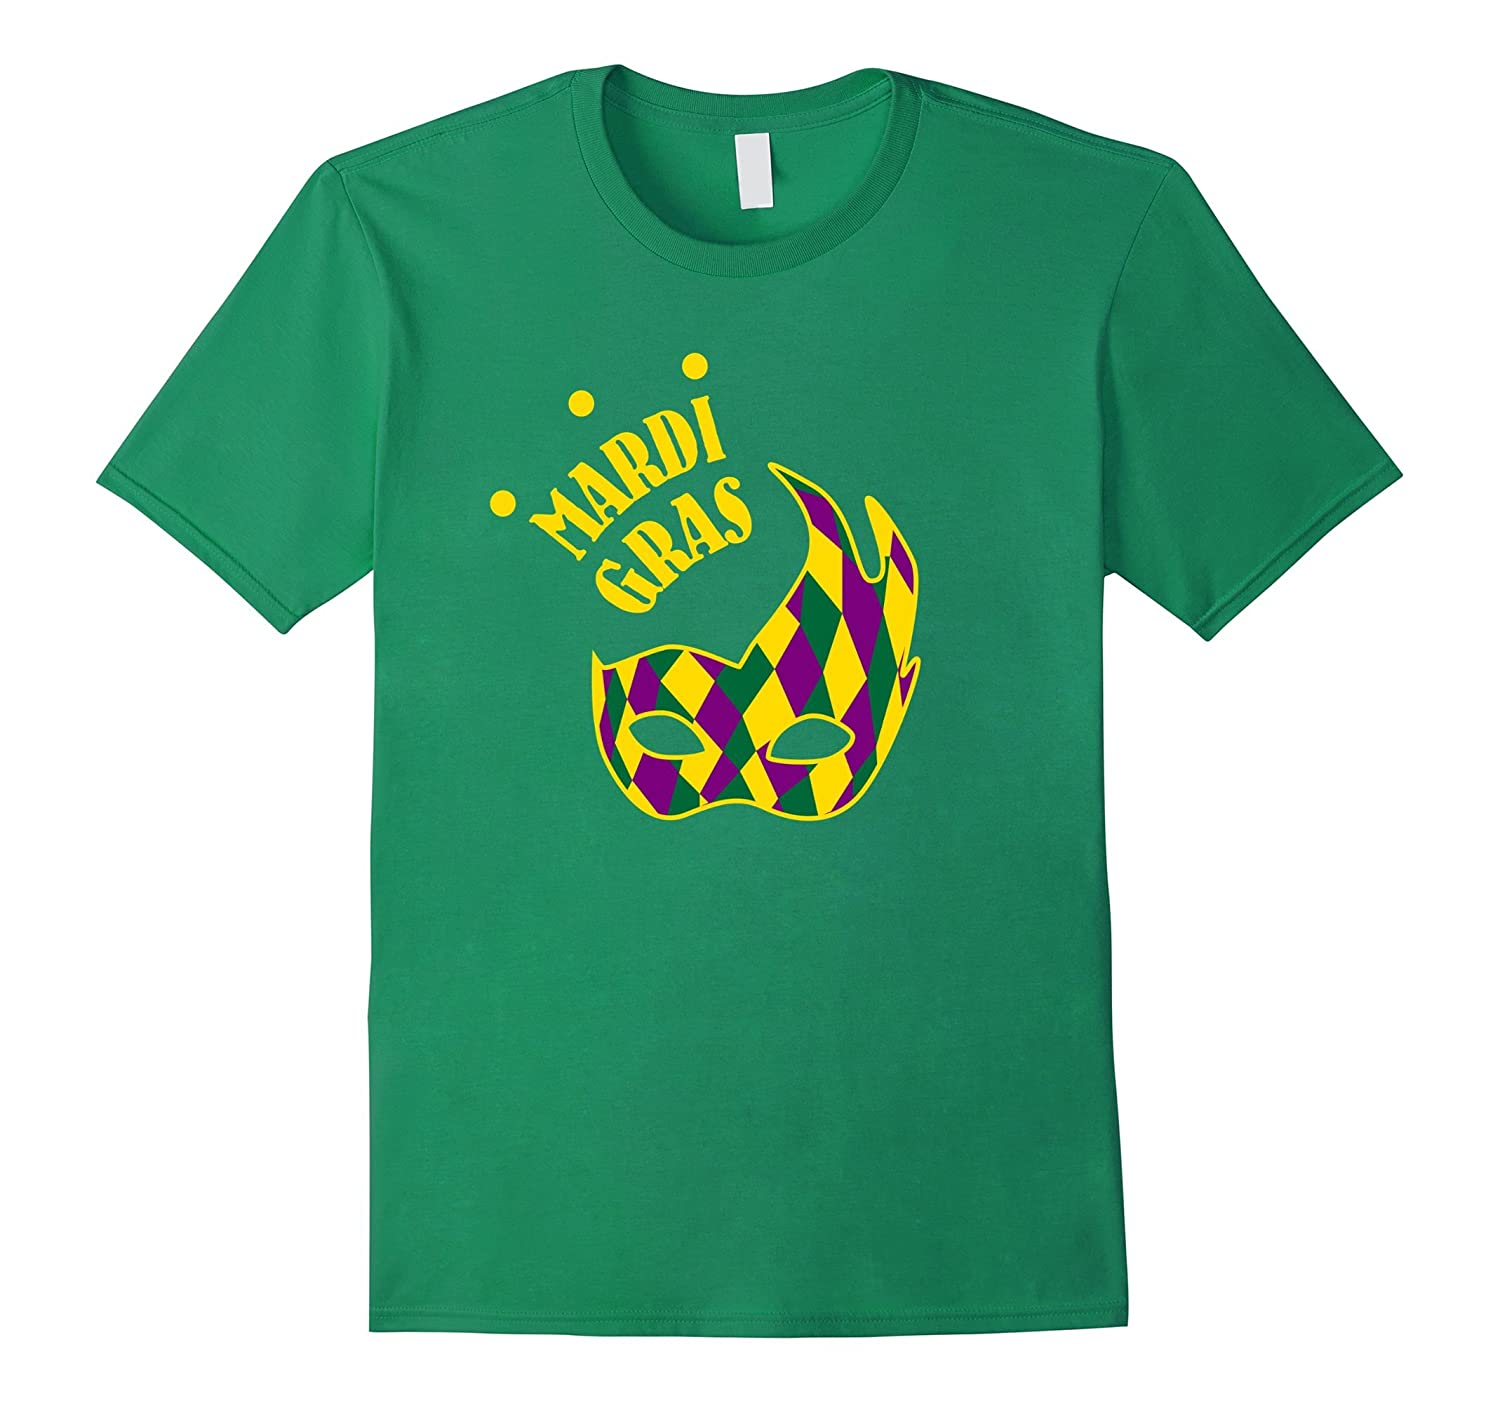 Mardi Gras Shirt Funny Cute Mask Celebration Party Gift-TD